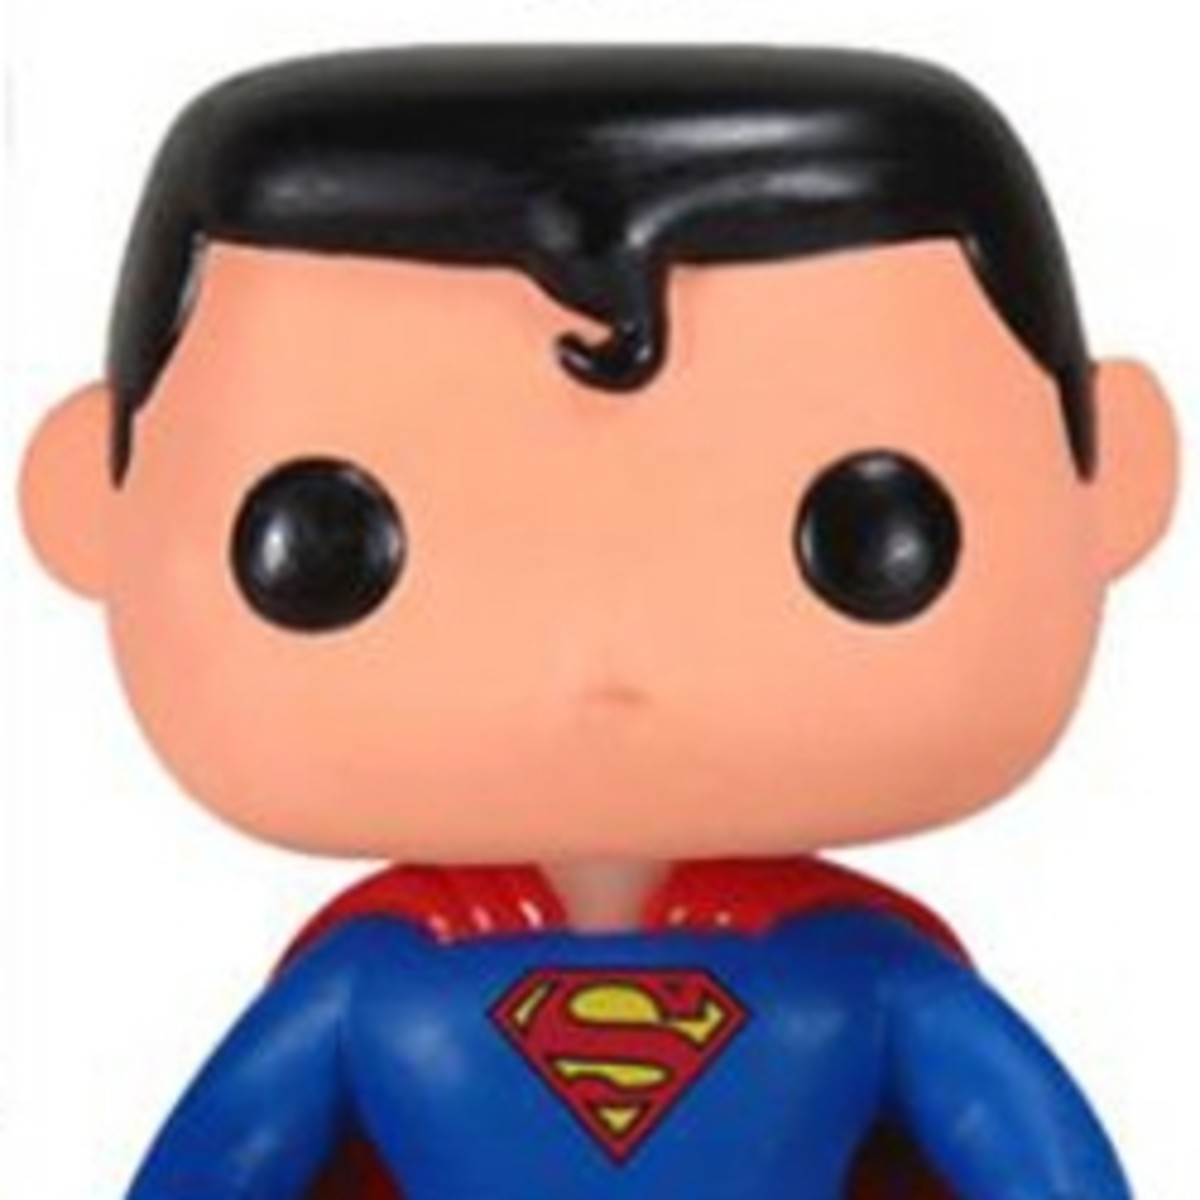 DC Comics Action Figures: Funko Pop Heroes Series 1 and 2